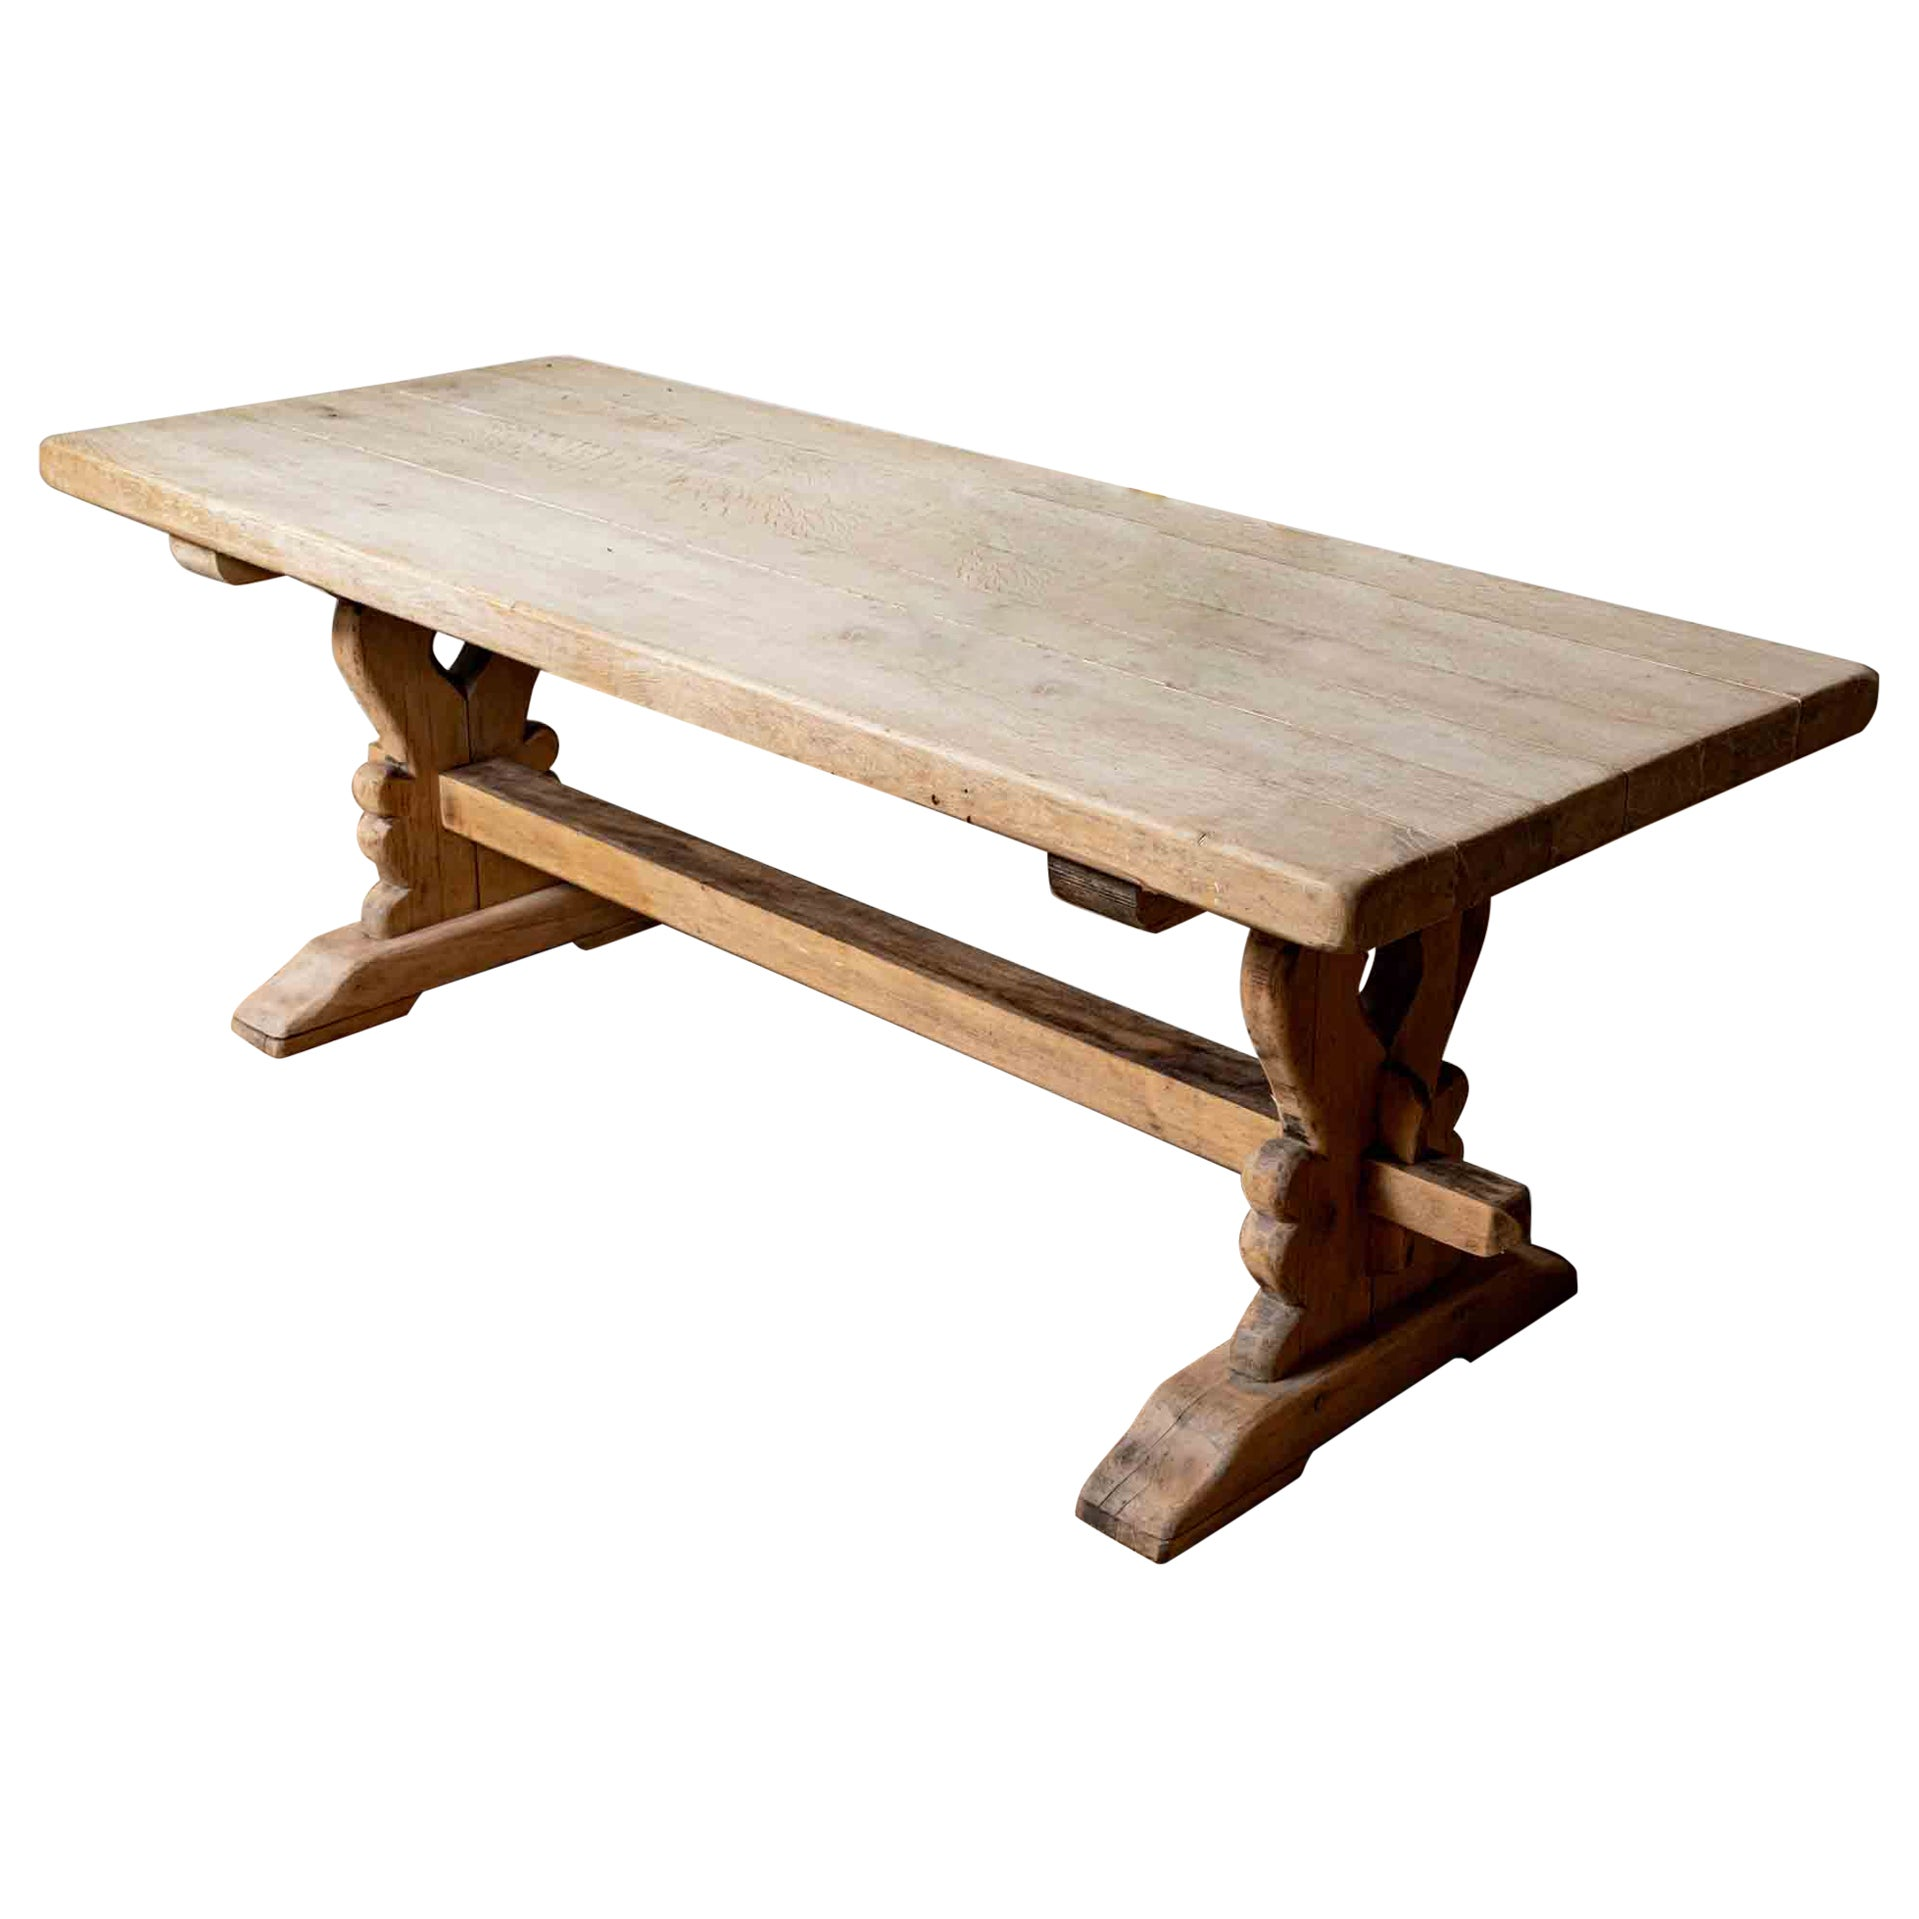 1920s French Oak Country Kitchen Deep Planked Refectory Dining or Console Table